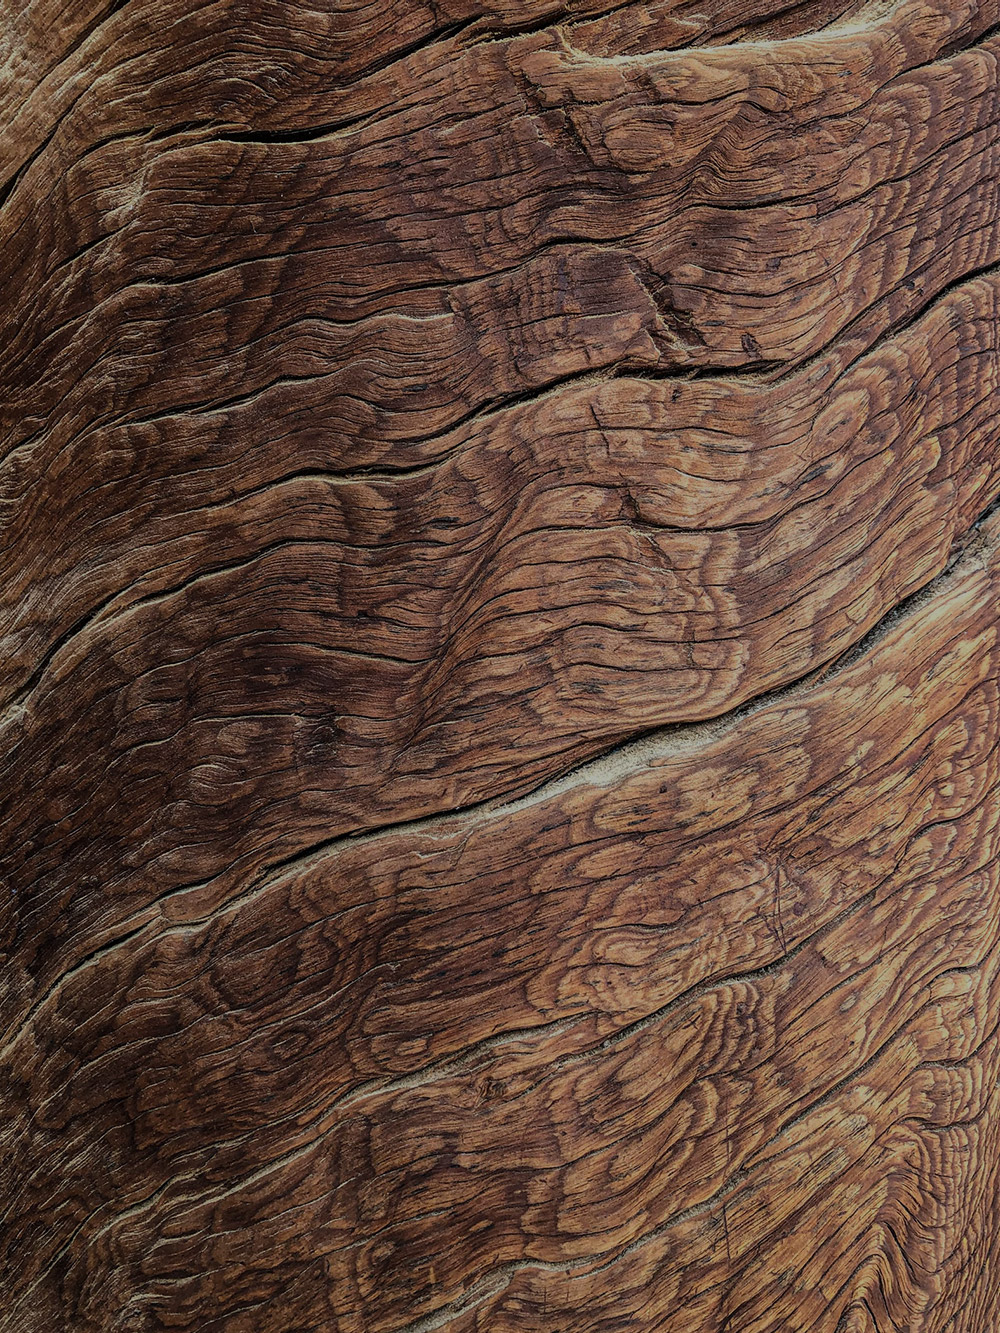 Image of rich brown bark close up